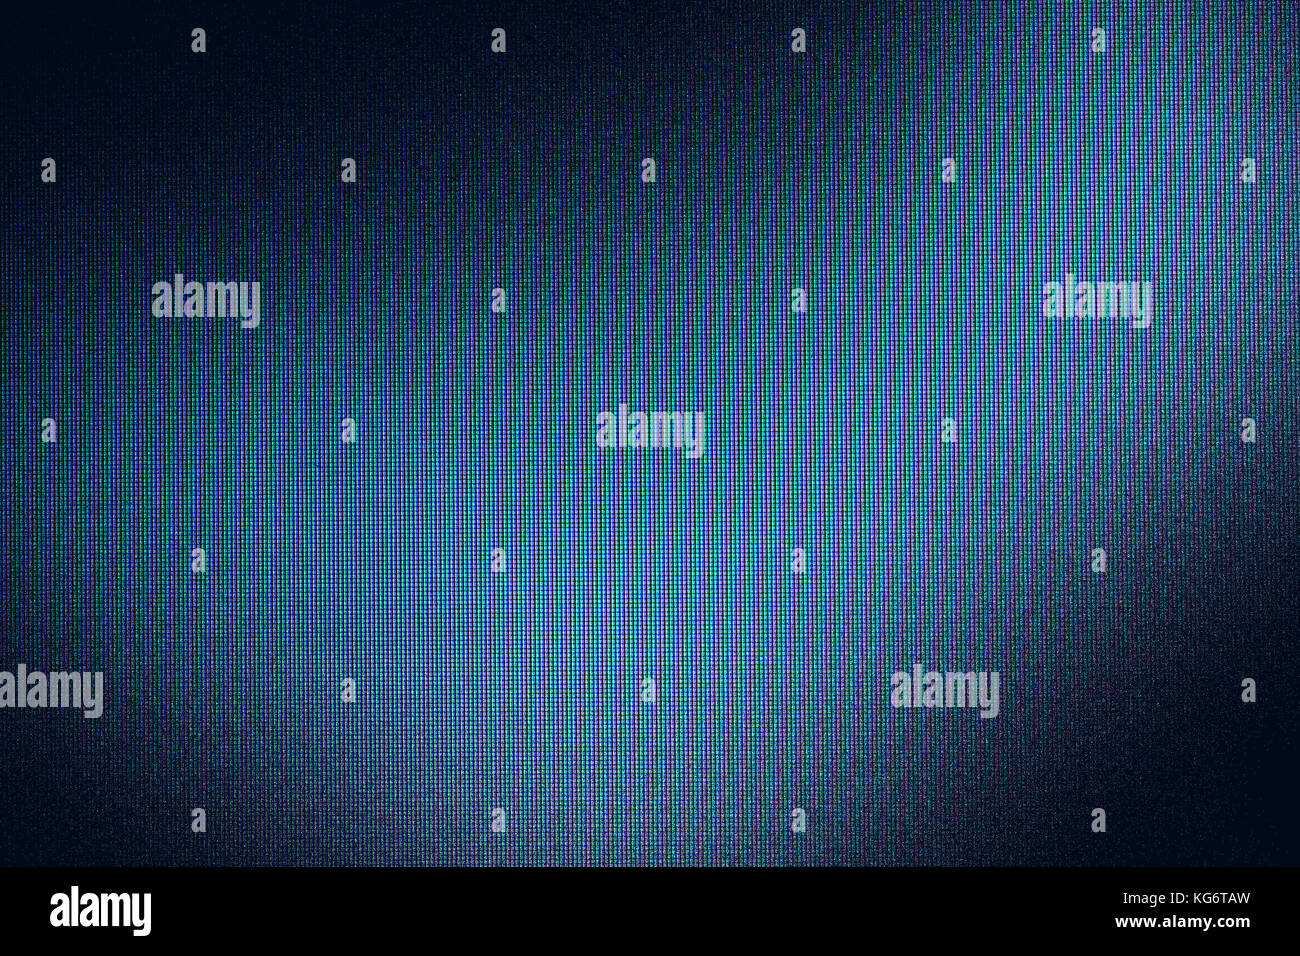 Lcd Screen Texture Background Stock Photos & Lcd Screen ...